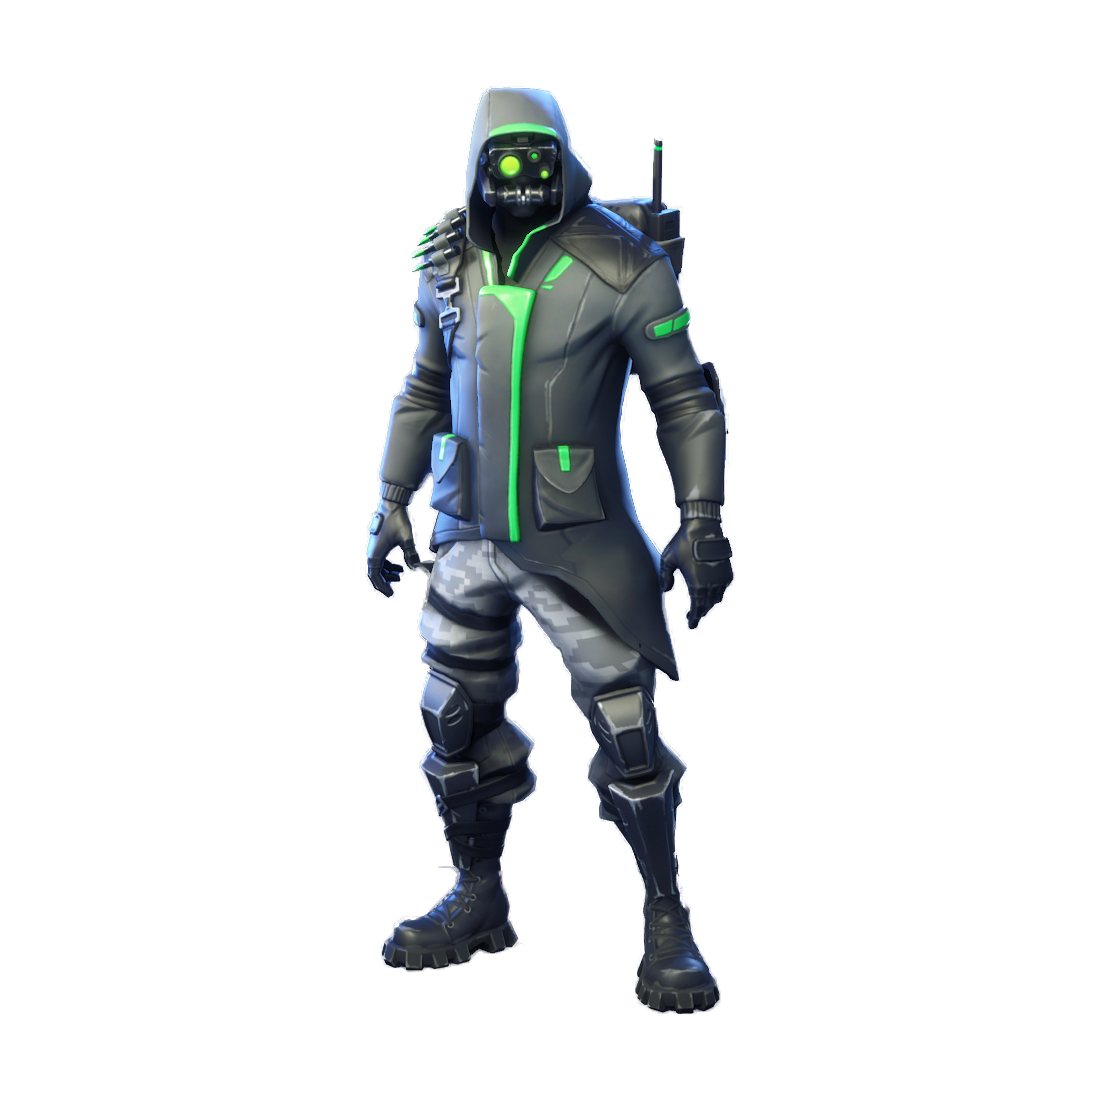 Fortnite Archetype PNG Image